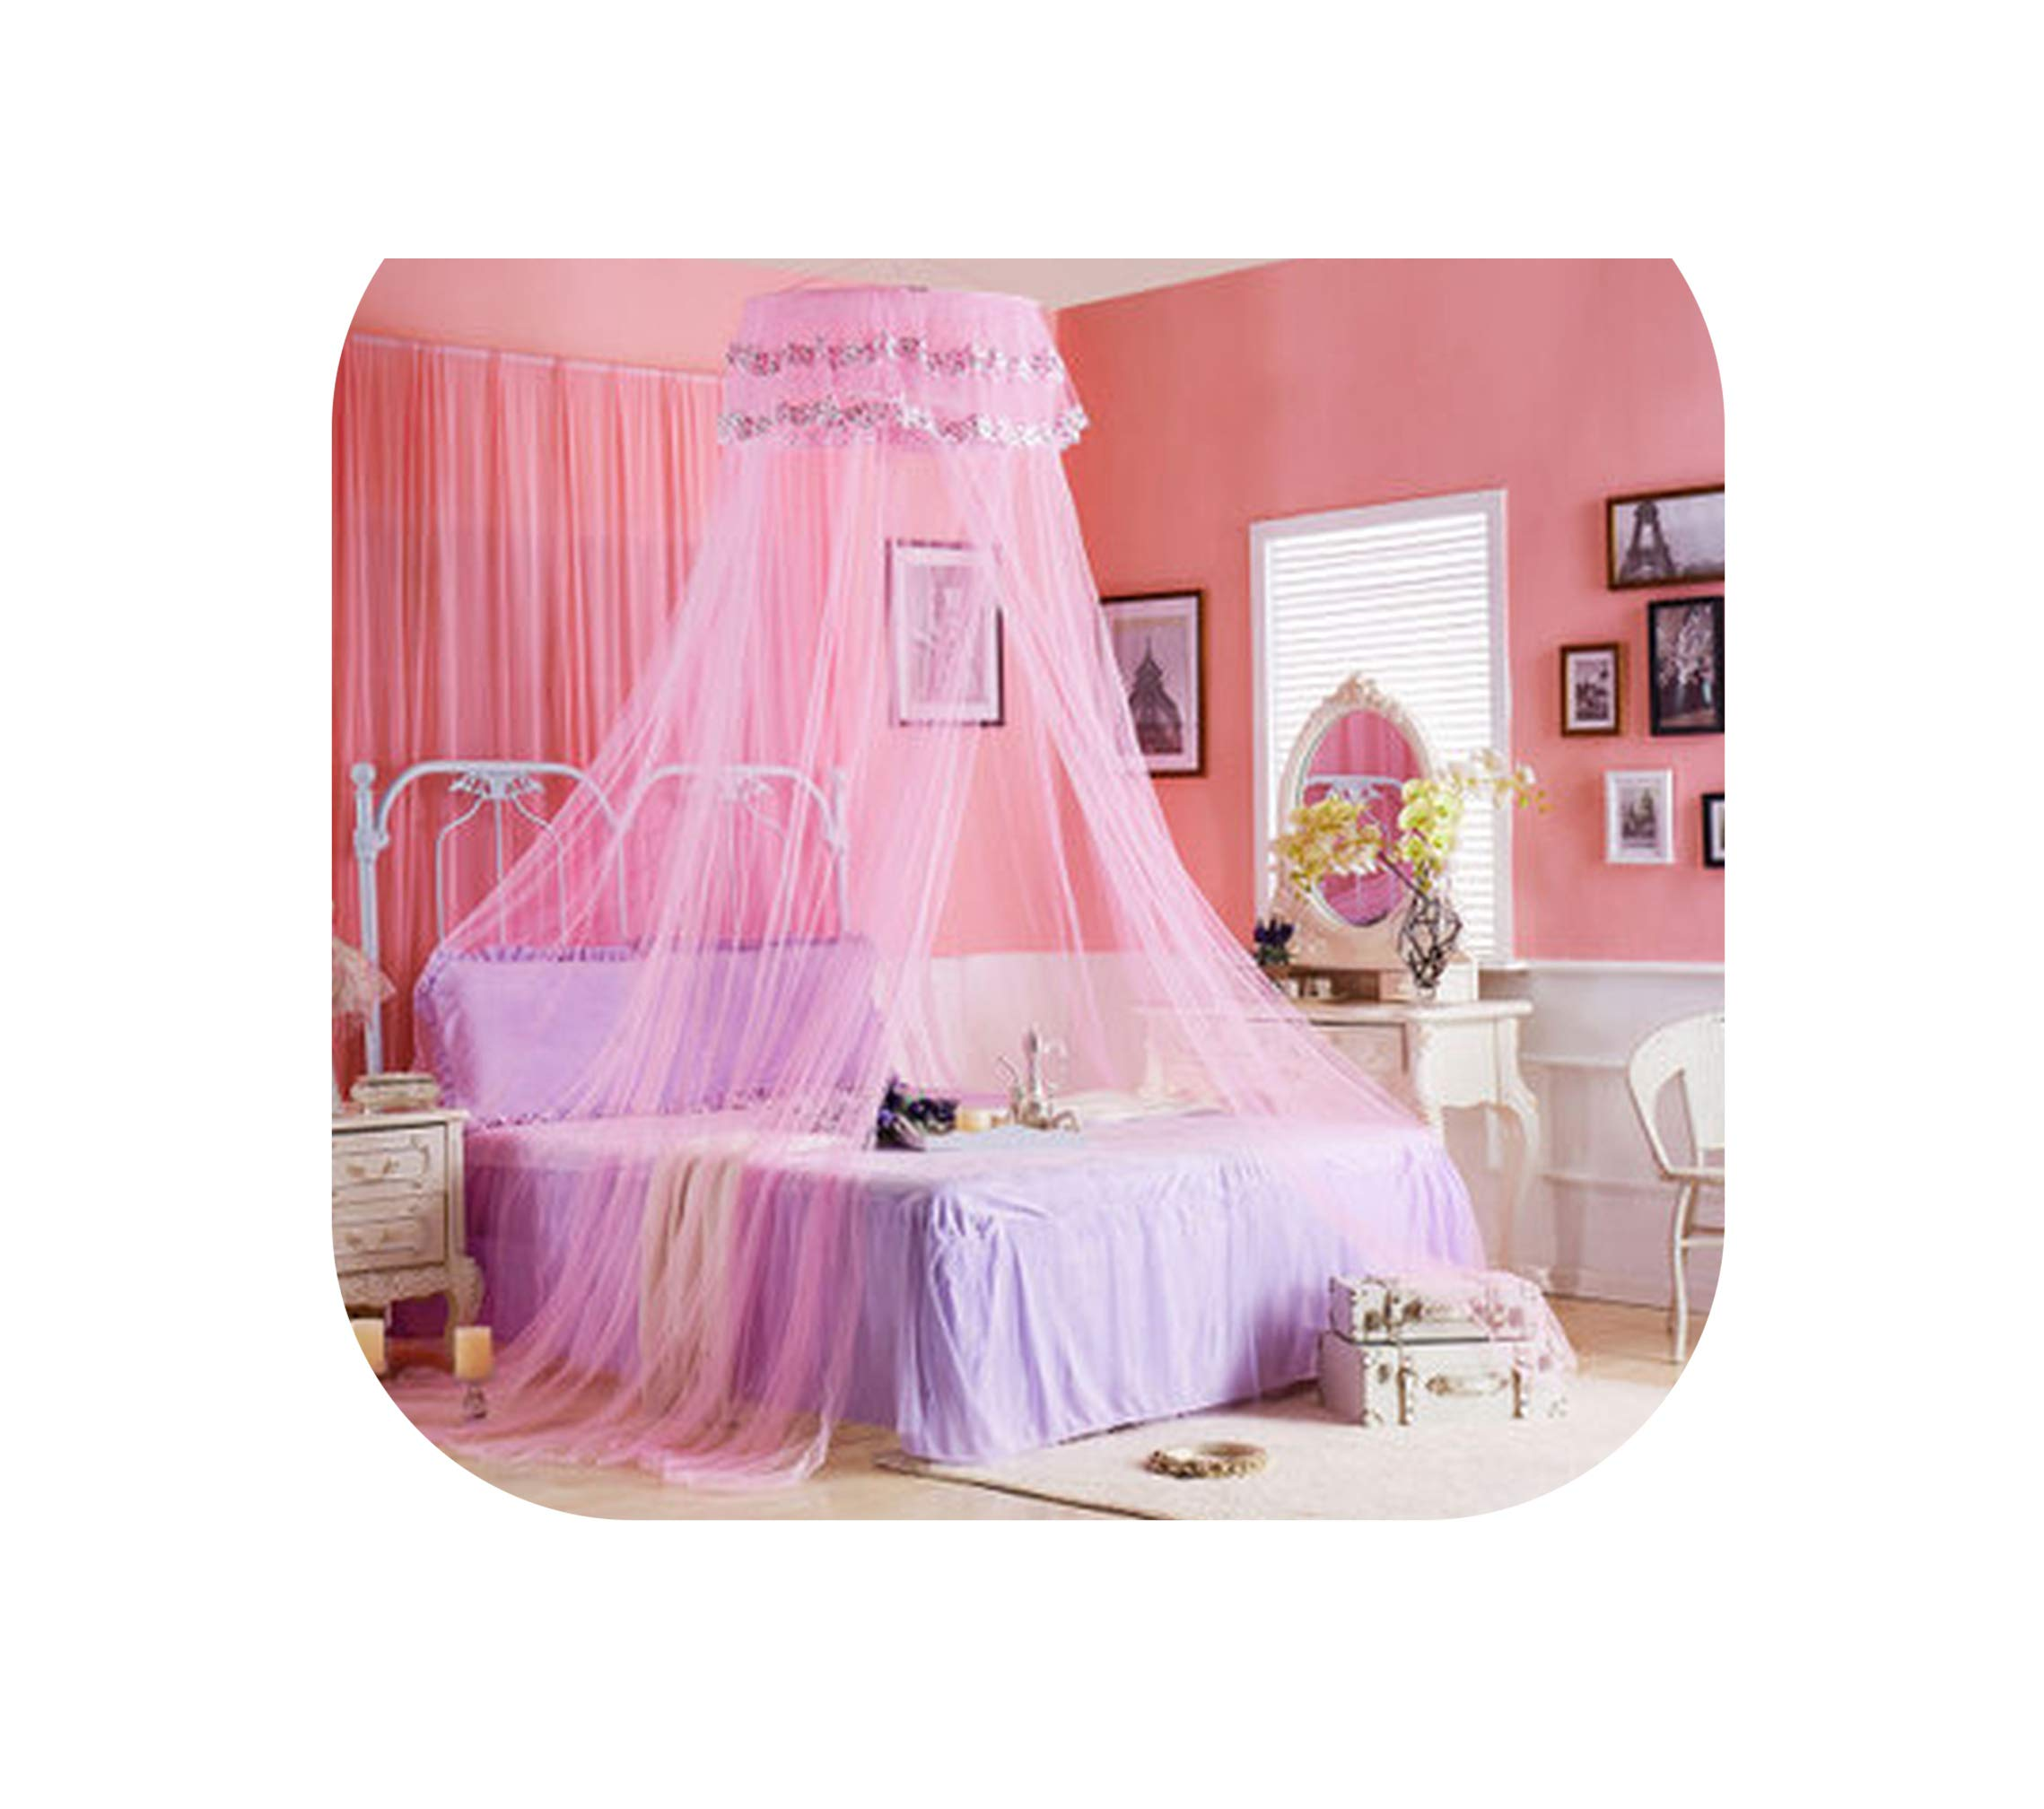 Portable Mosquito Net for Bed Canopy Round Canopy Netting Mesh Lace Curtain Bed Tent Anti Bug Insert Cibinlik Purple Nets,Pink,1.5m (5 feet) Bed by SuWuan mosquito net (Image #1)